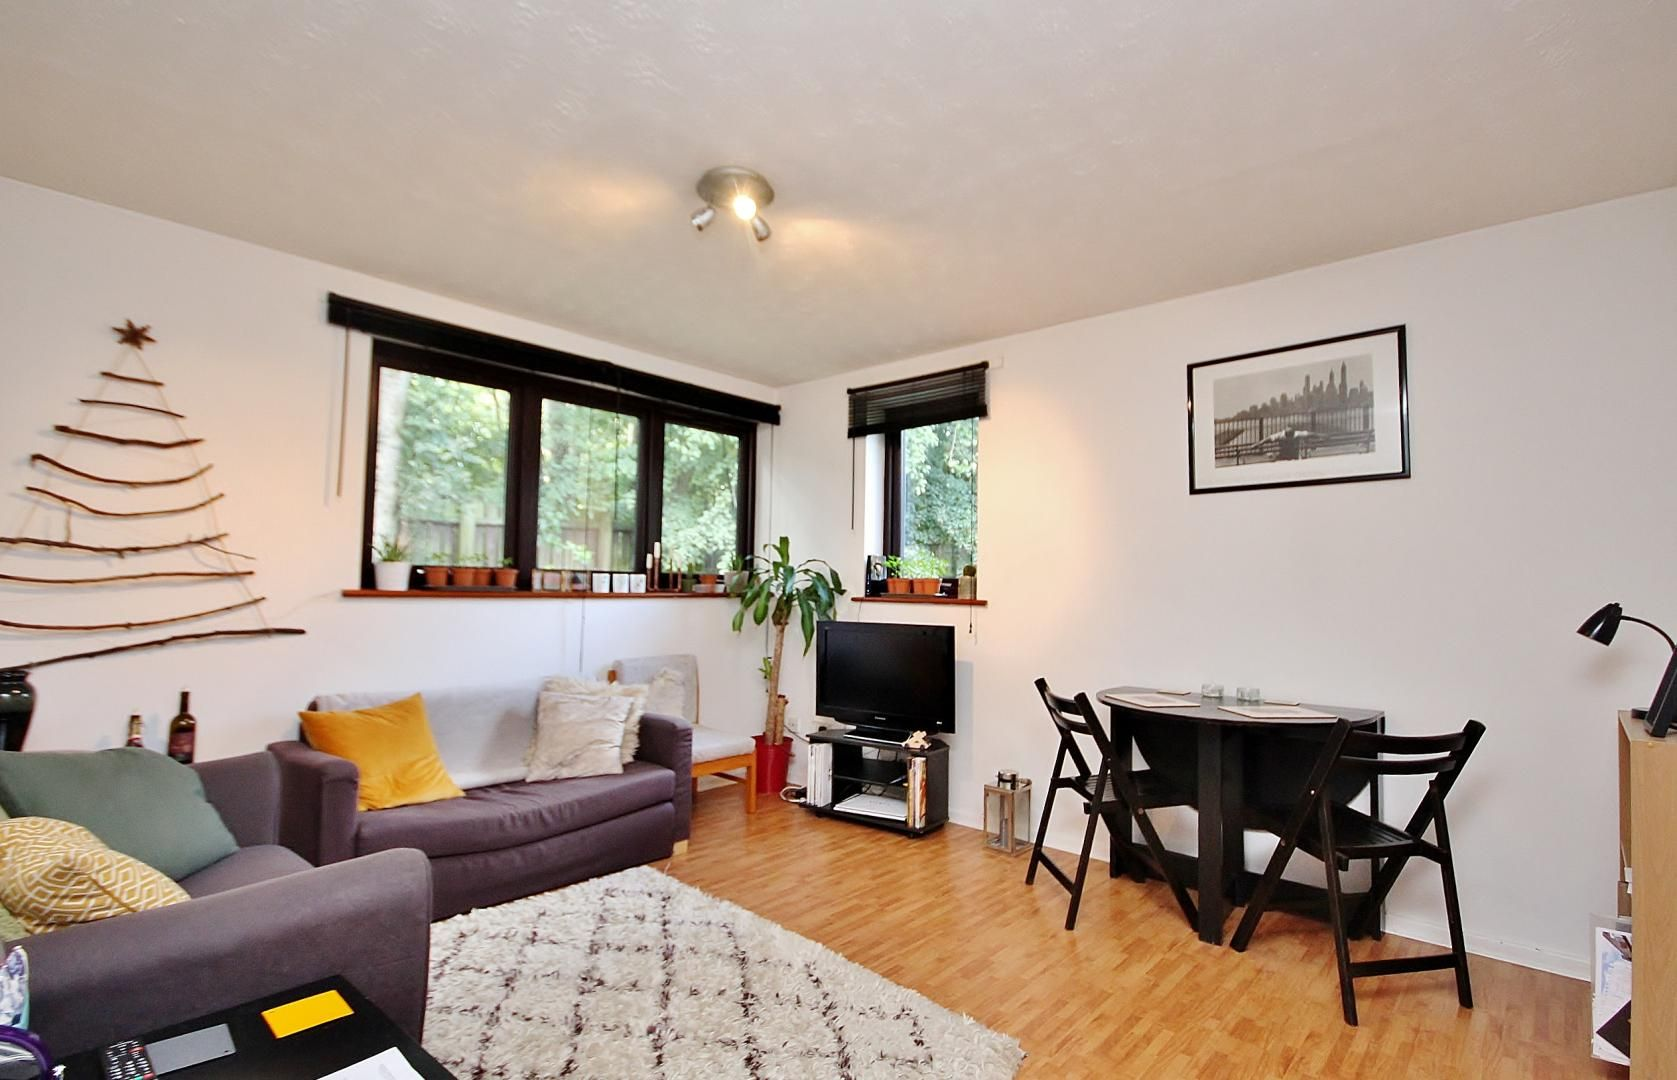 2 bed flat to rent in Acacia Road, NW8